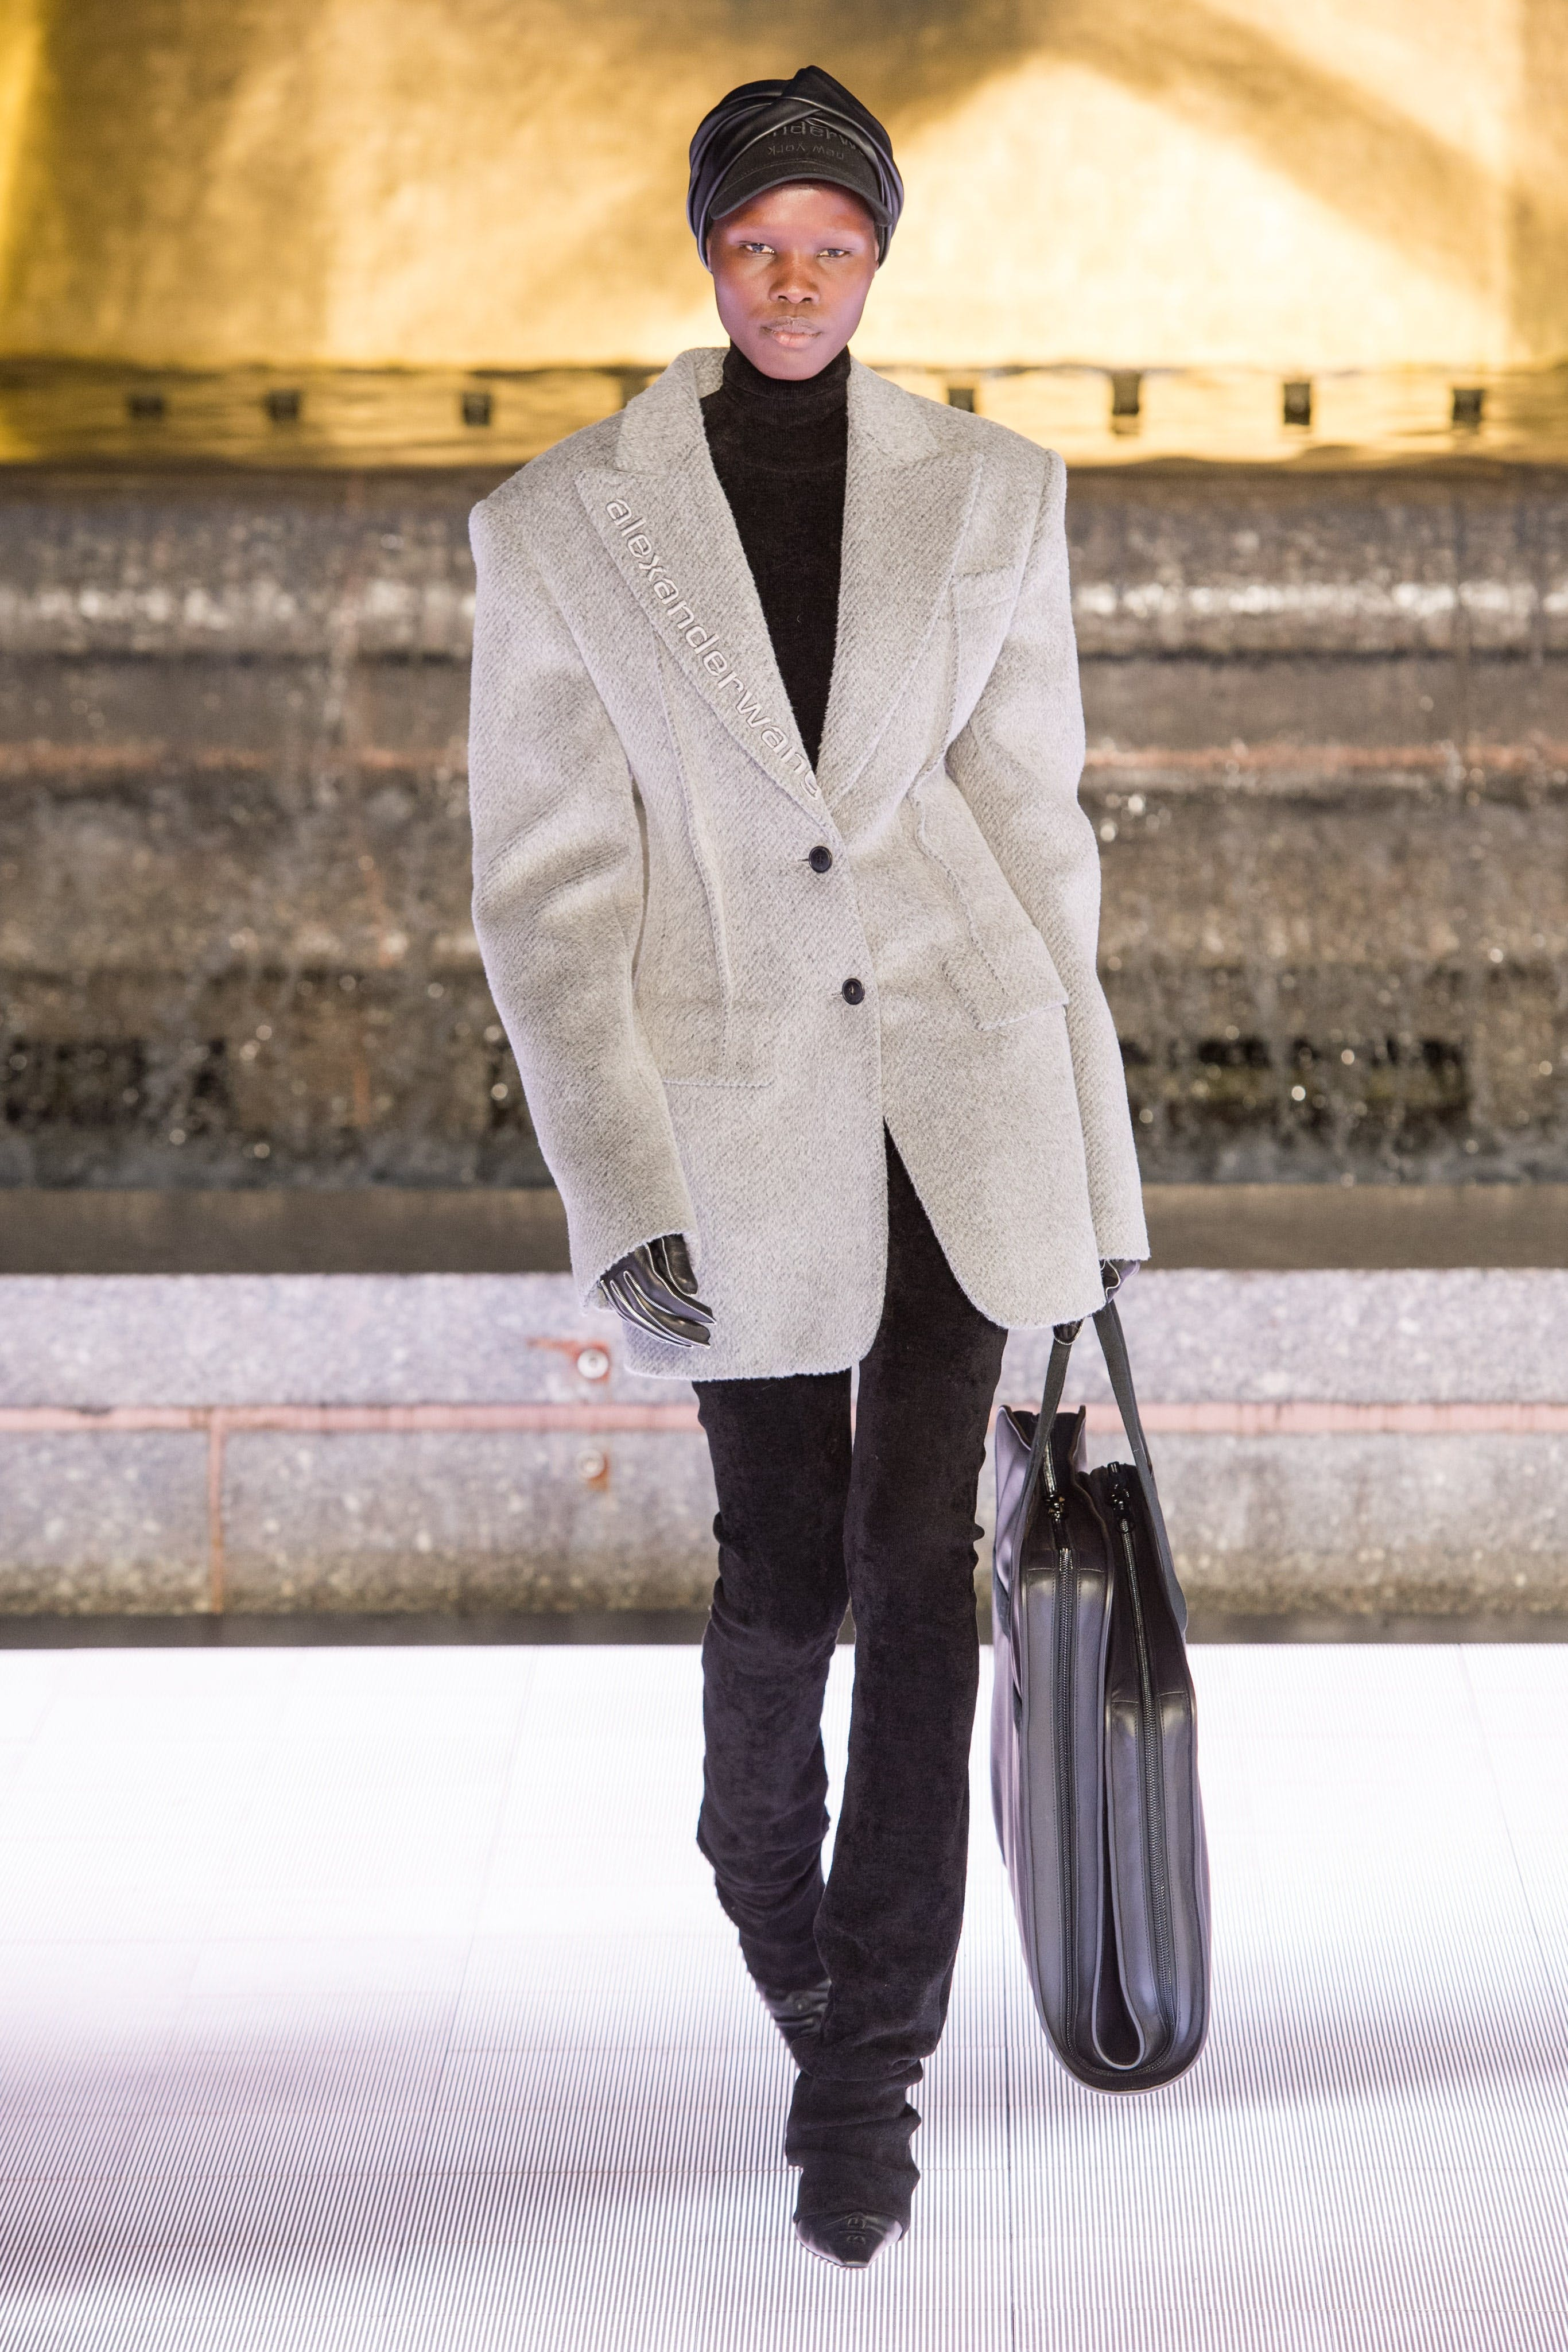 Alexander Wang Runway Relaxed Oversized Blazer in Grey Turtleneck in Black Elastic Crepe Pant in Black Spring 20 RTW